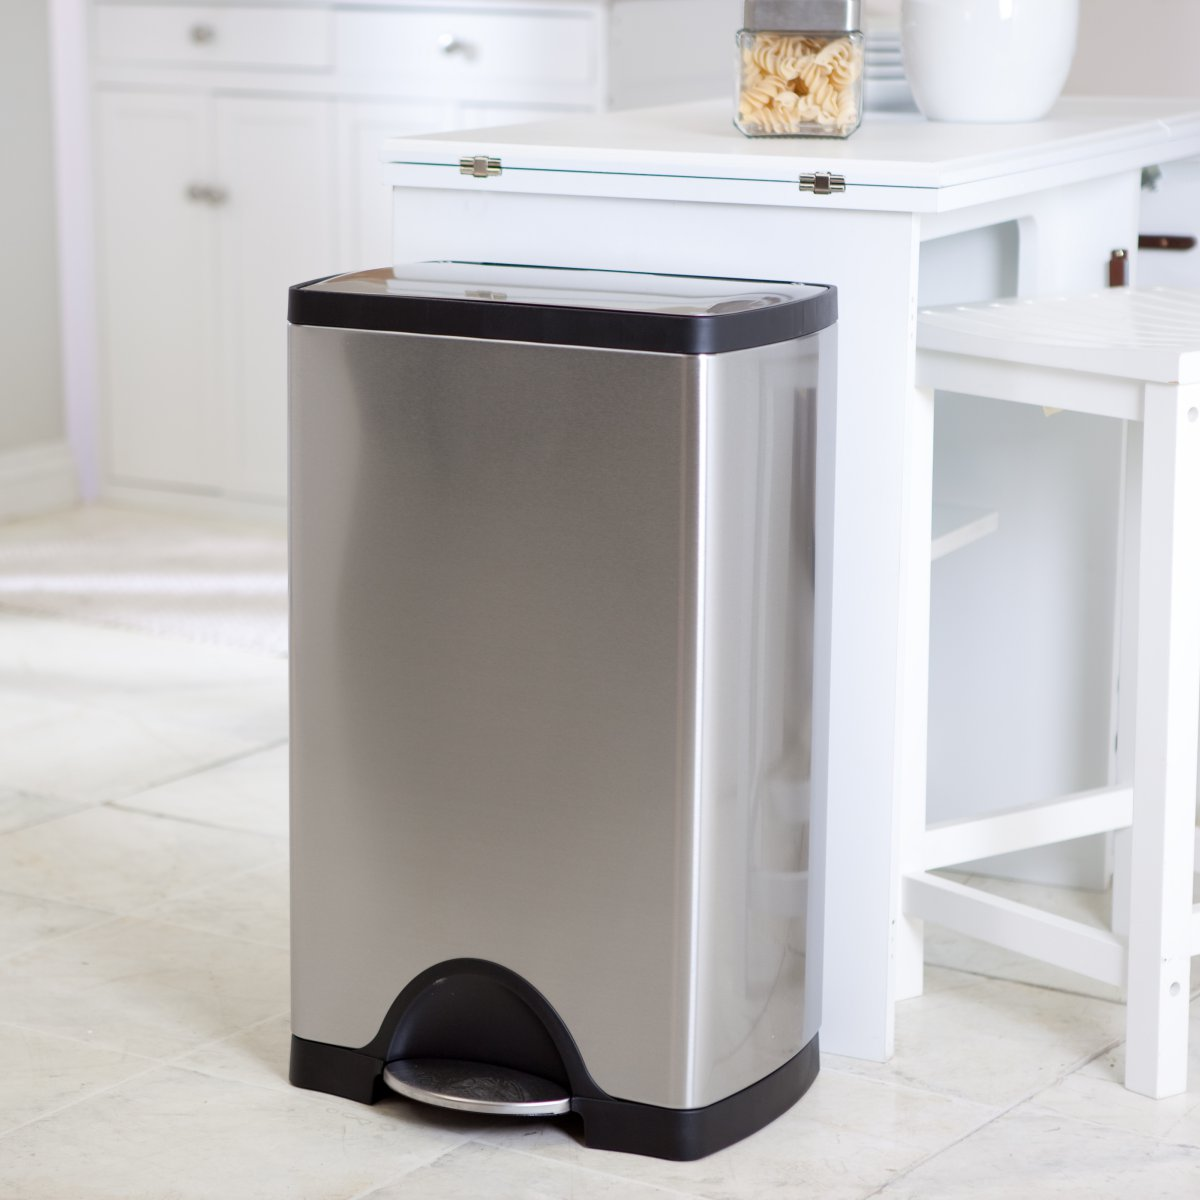 Stainless steel trash can kitchen Photo - 7